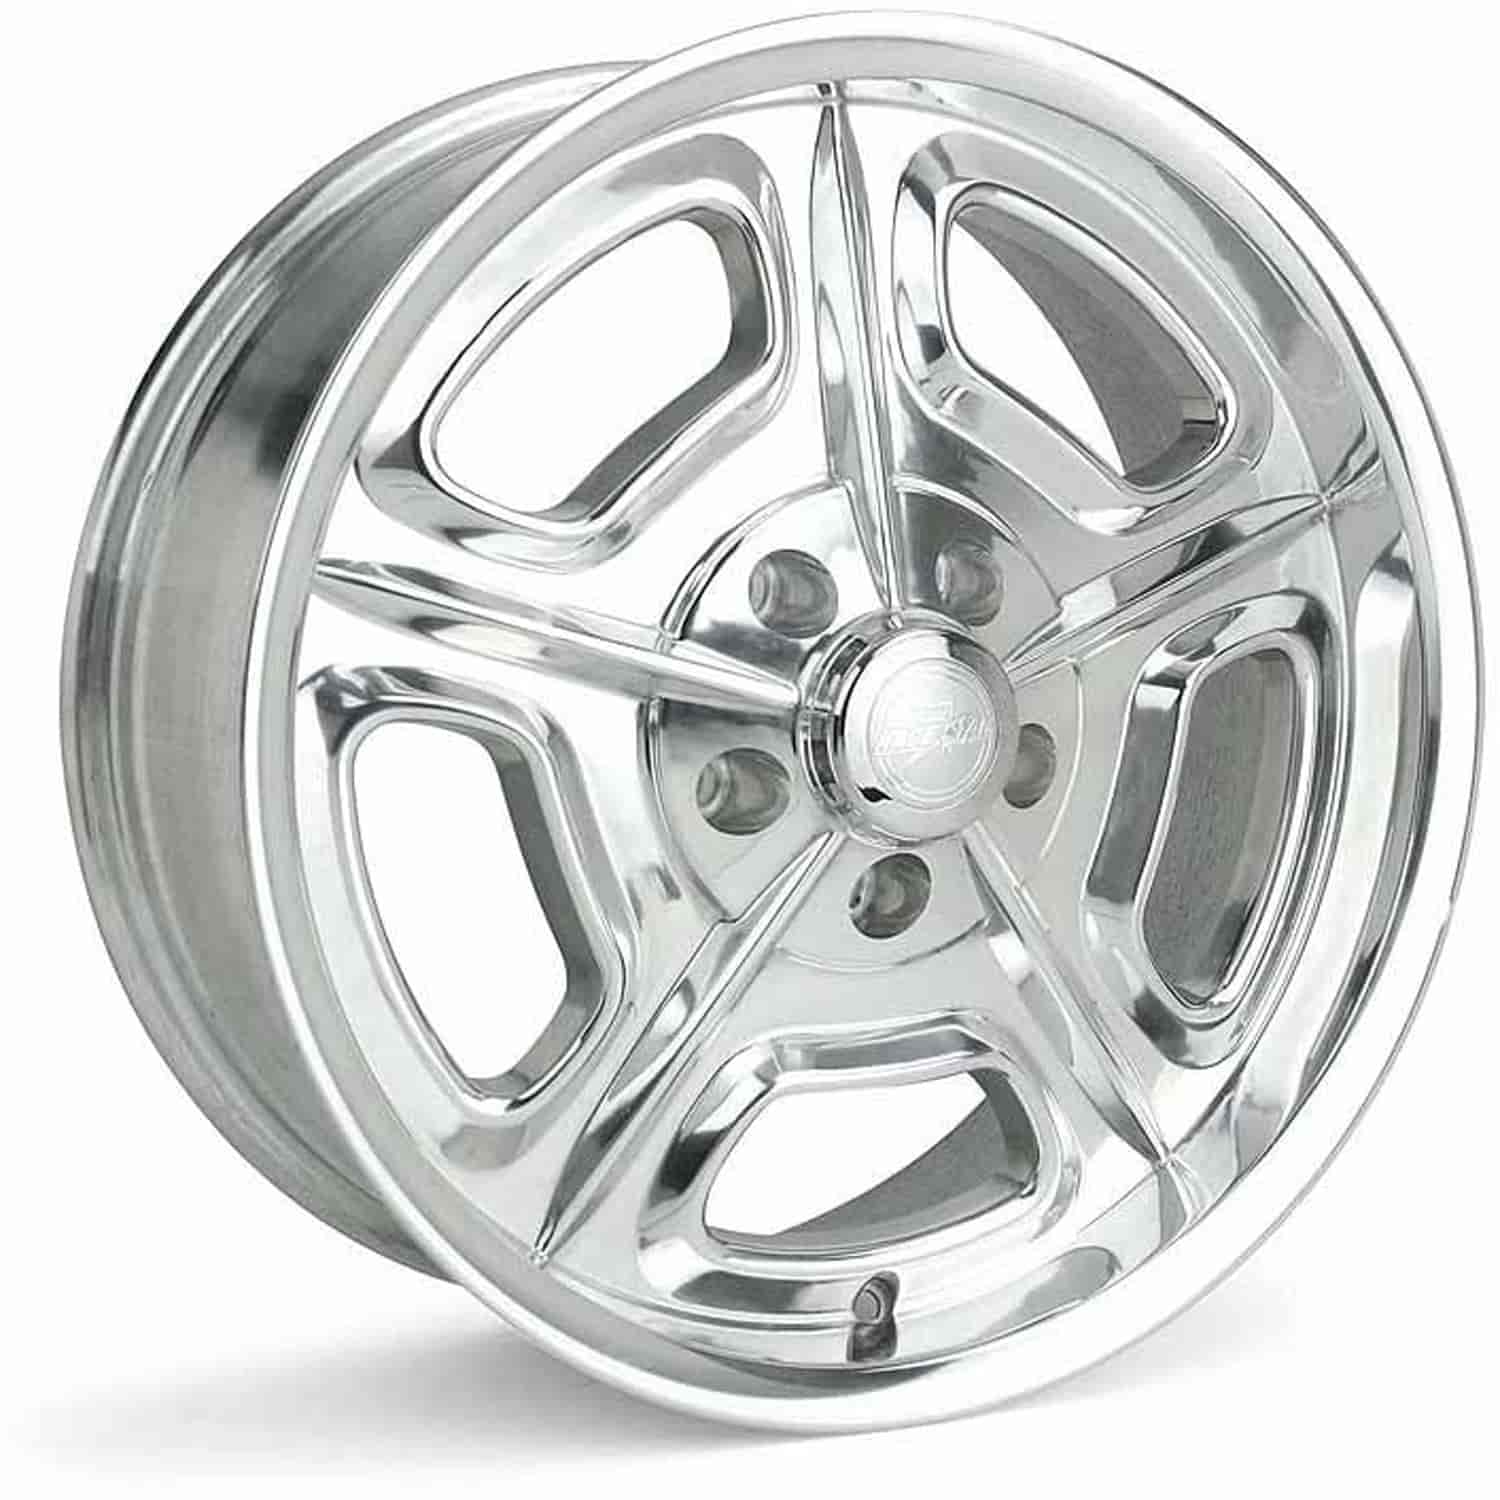 Race Star Wheels 32-870247P